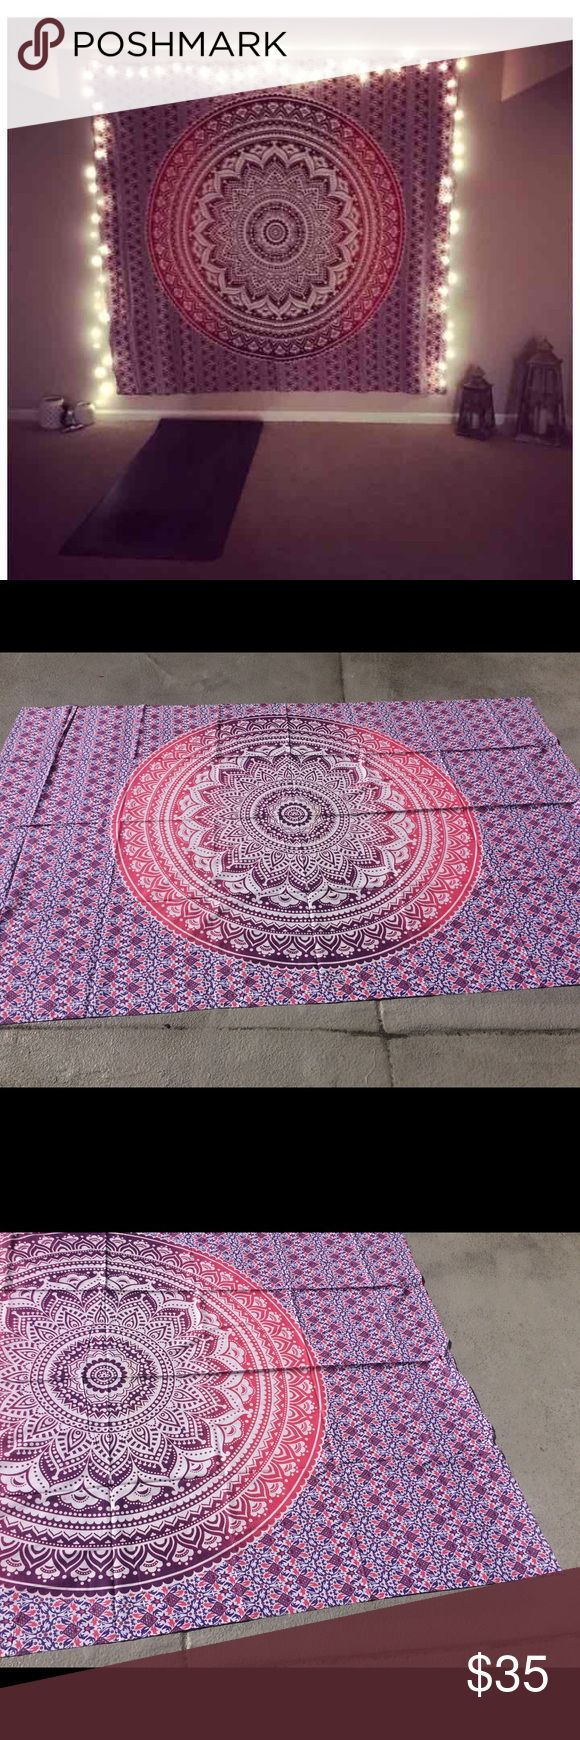 "🎁handmade Multiuse Tapestry Mandala decor🎉 Brand new.Handmade with natural dyes.   Uses: bed spread, couch spread, curtains, wallhangings, Celling decor, beach mat, picnic mat, table cloth, yoga & meditation.  Size: 90"" X 84"" inch ( Queen bed)   Material;100% Cotton  Wash: cold wash   #festival #bohohome #bohochic #bohostyle #hippylife #hippiekid #gypsylife #tapestry #mandala #yogamat #mandala #burningman, #birthdaygift, #beachtowel #bedspread #walldecor #gift #boho #hippy #gypsy…"